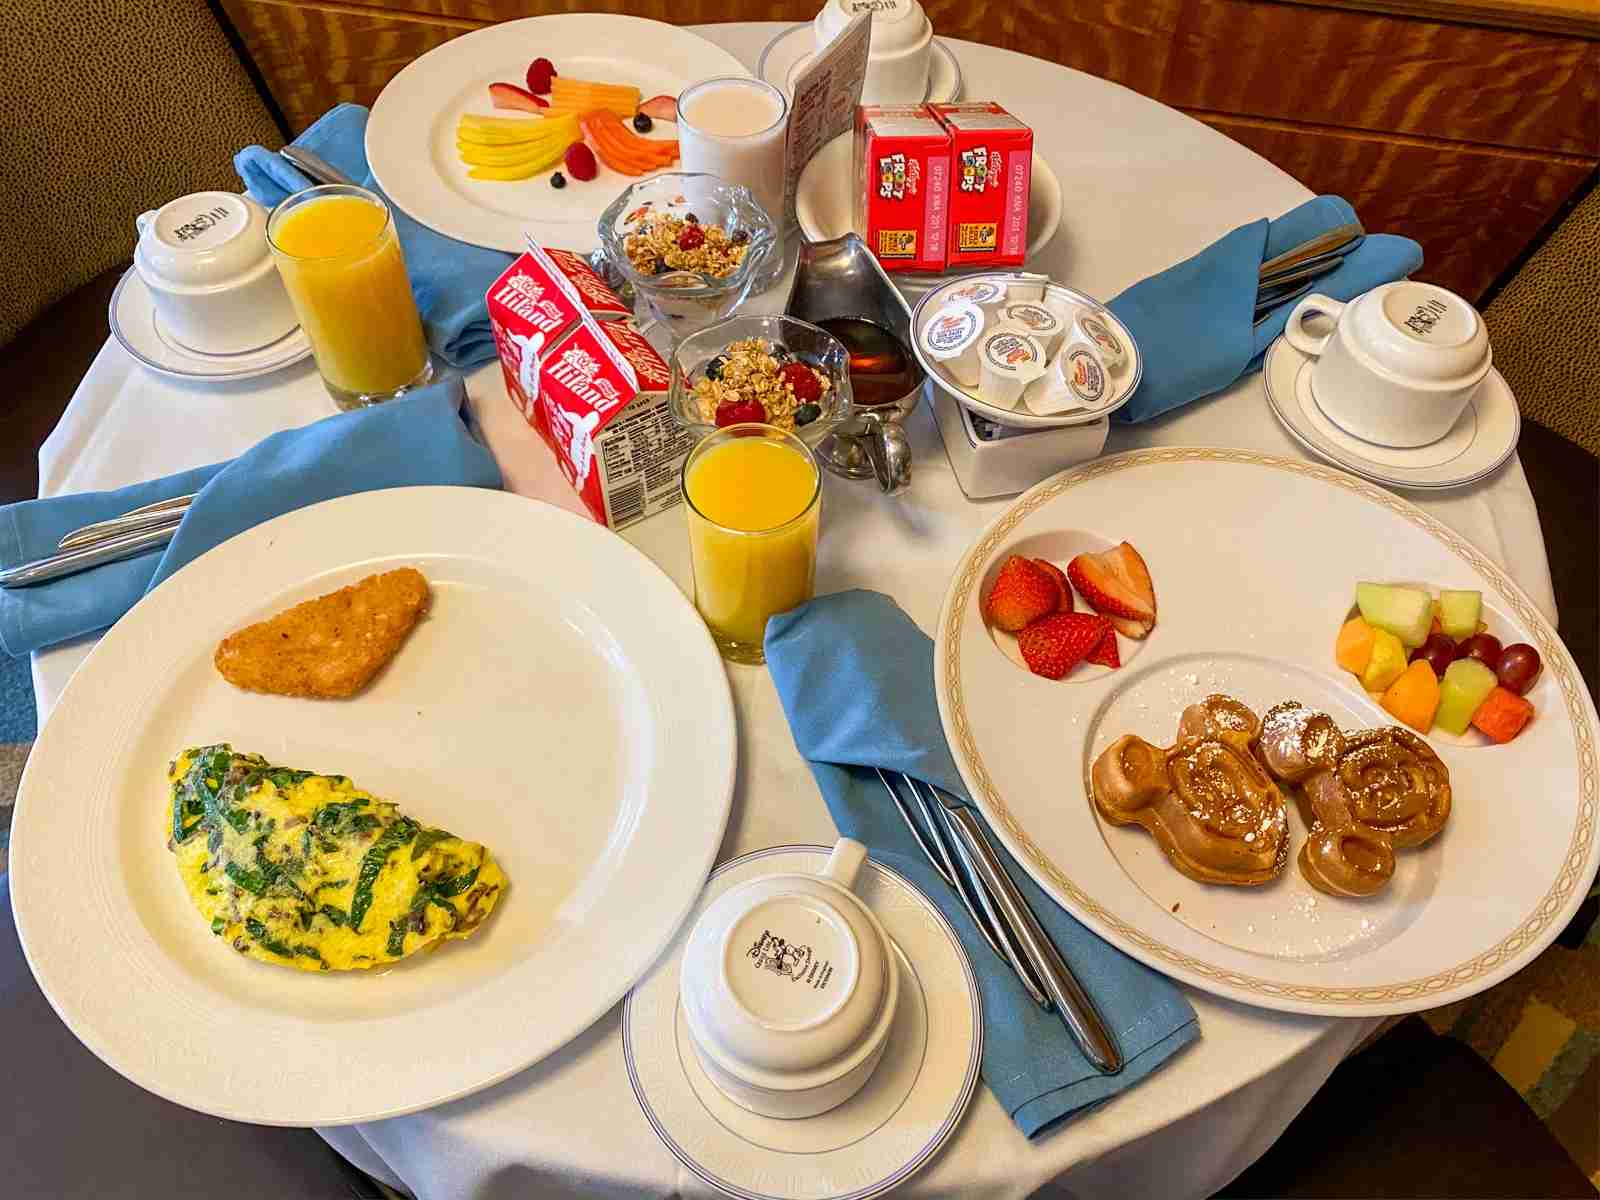 Hot room service breakfast only available to concierge level guests (Photo by Summer Hull/The Points Guy)